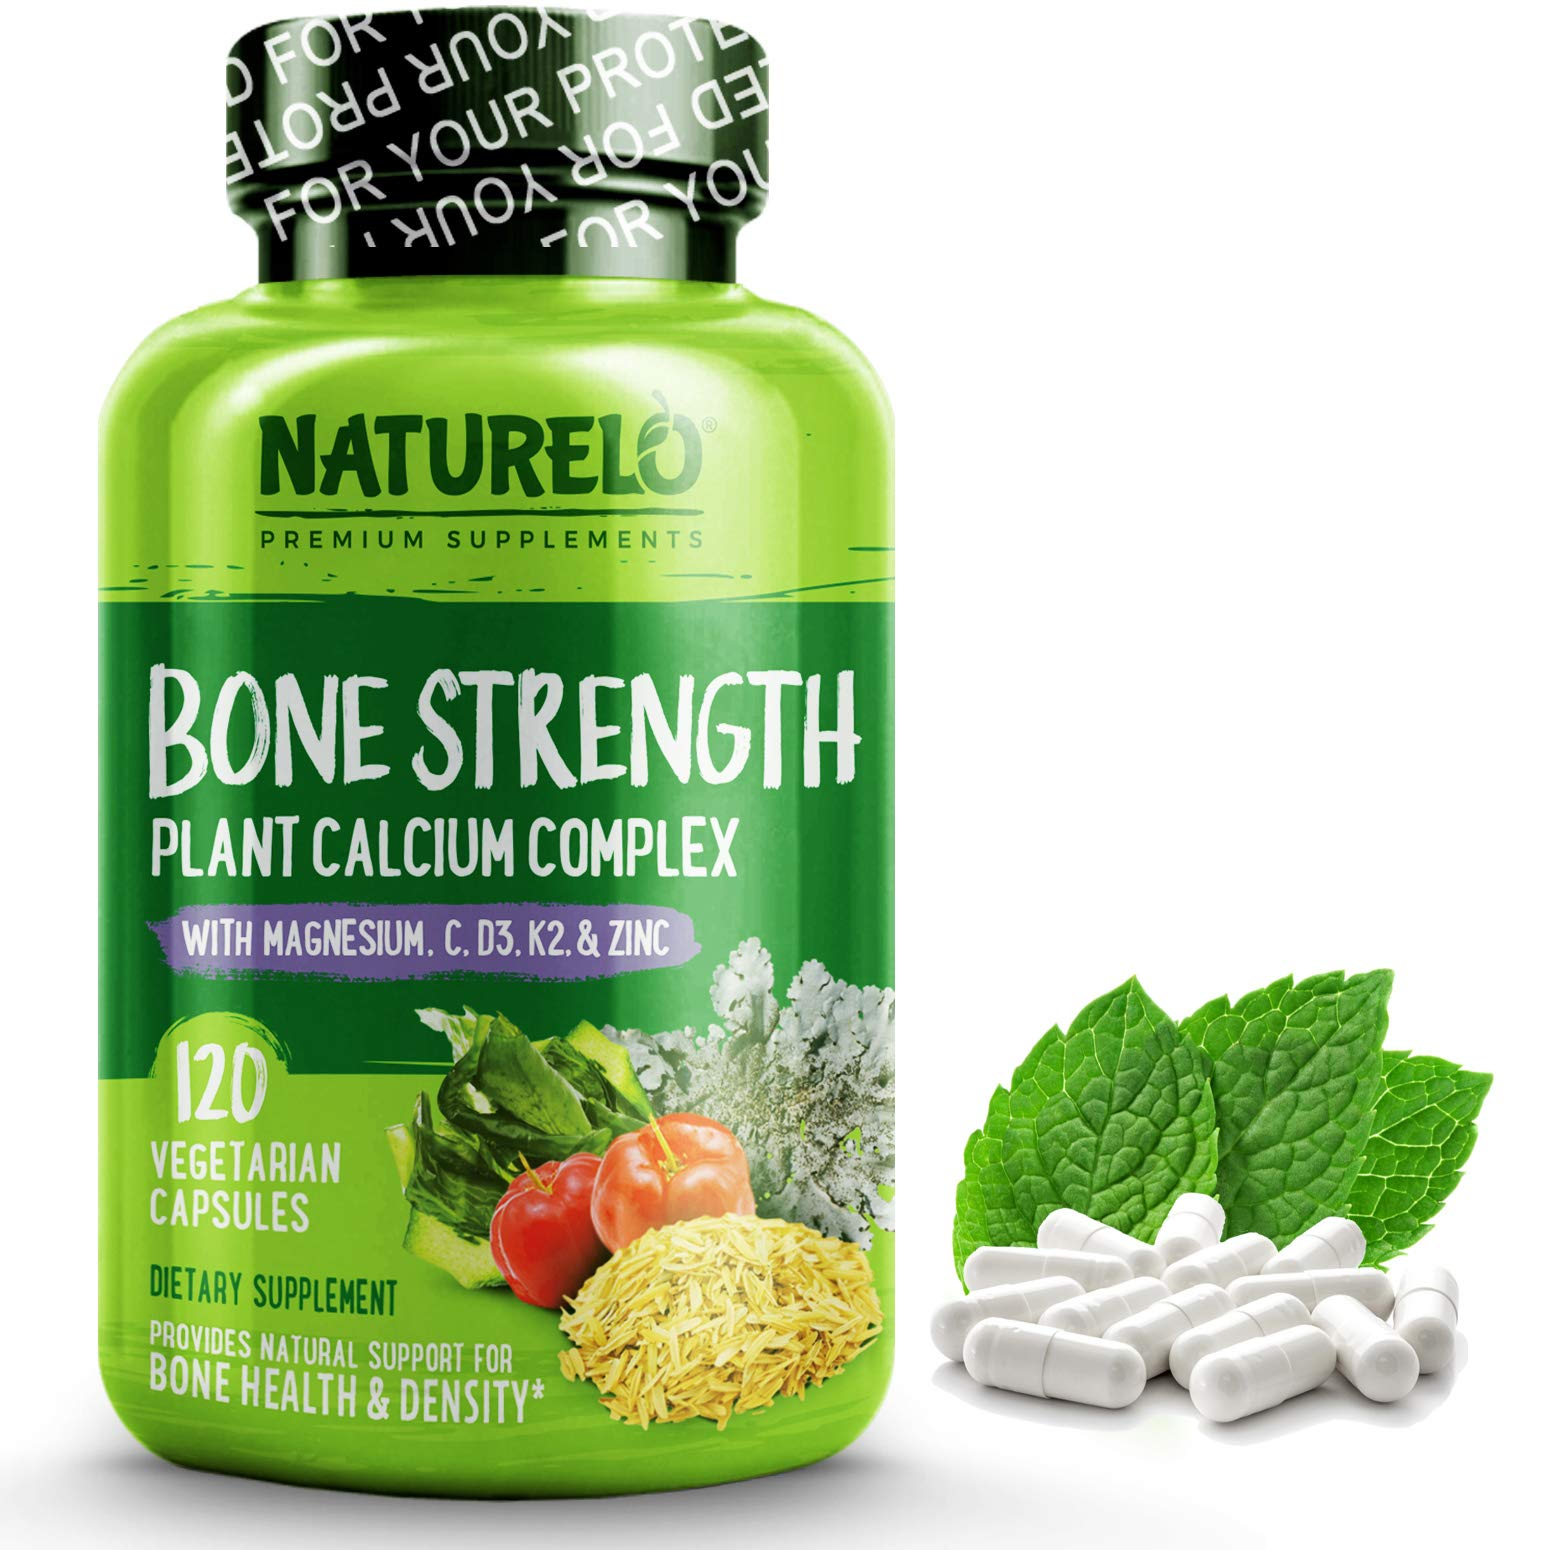 NATURELO Bone Strength - Plant-Based Calcium, Magnesium, Potassium, Vitamin D3, VIT C, K2 - GMO, Soy, Gluten Free Ingredients - Best Whole Food Supplement for Bone Health - 120 Vegetarian Capsules by NATURELO